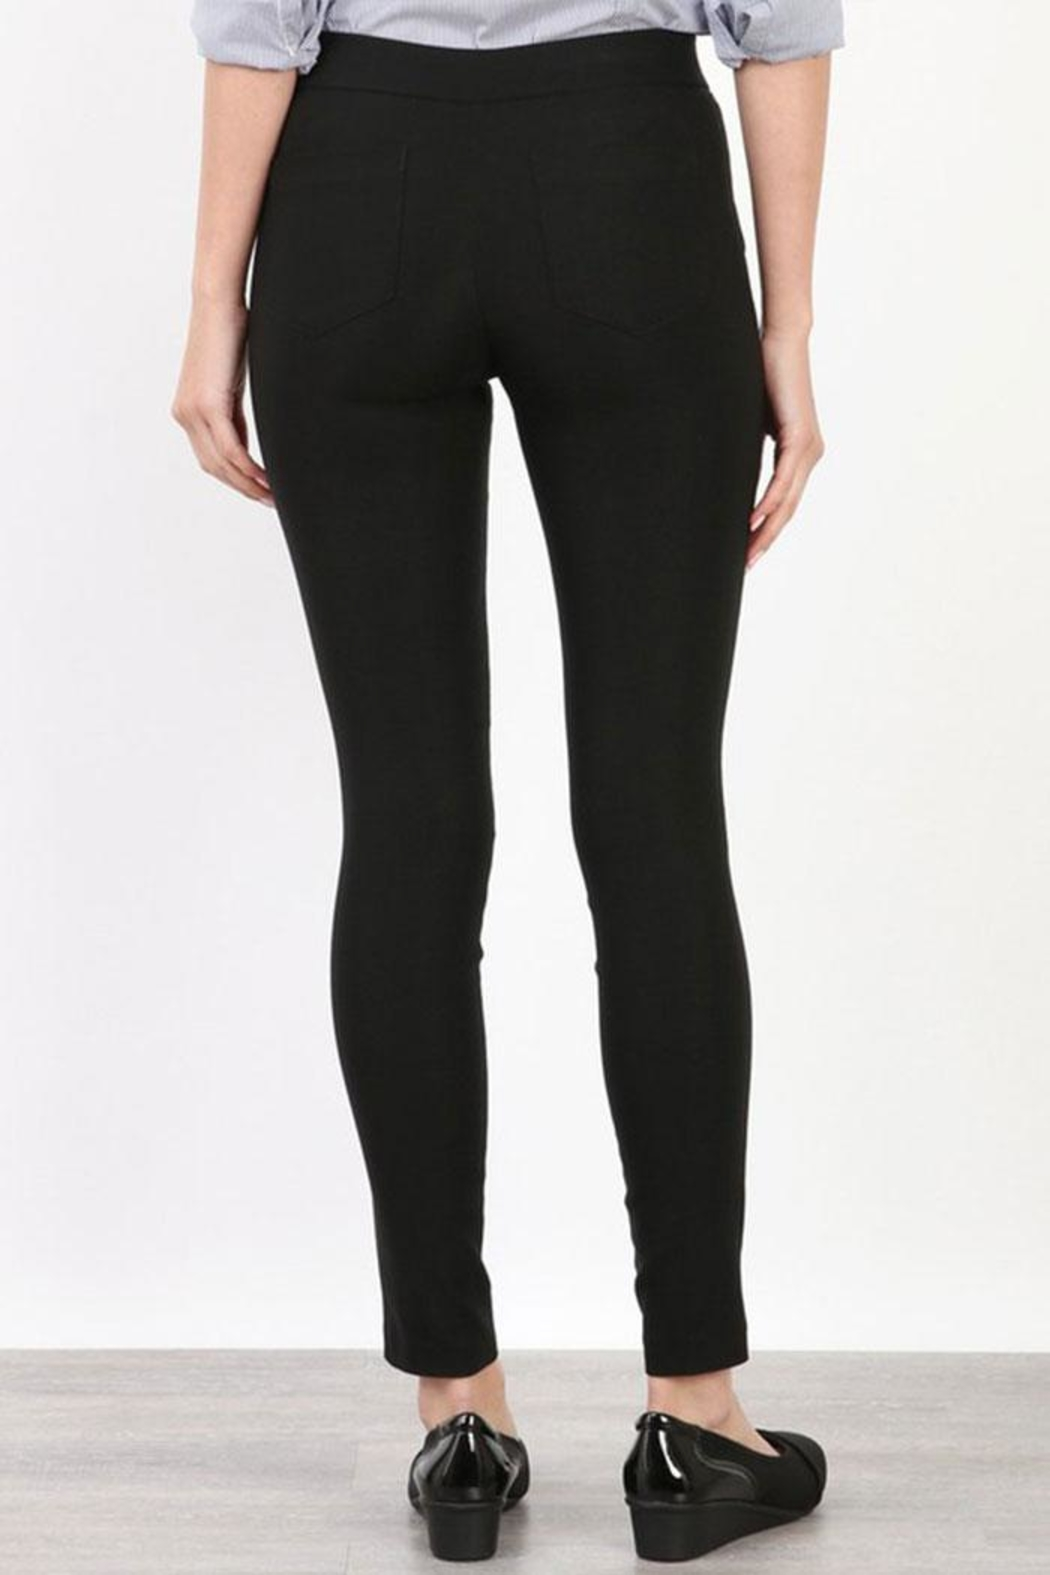 Mary Clan Four Way Stretch Pants - Back Cropped Image